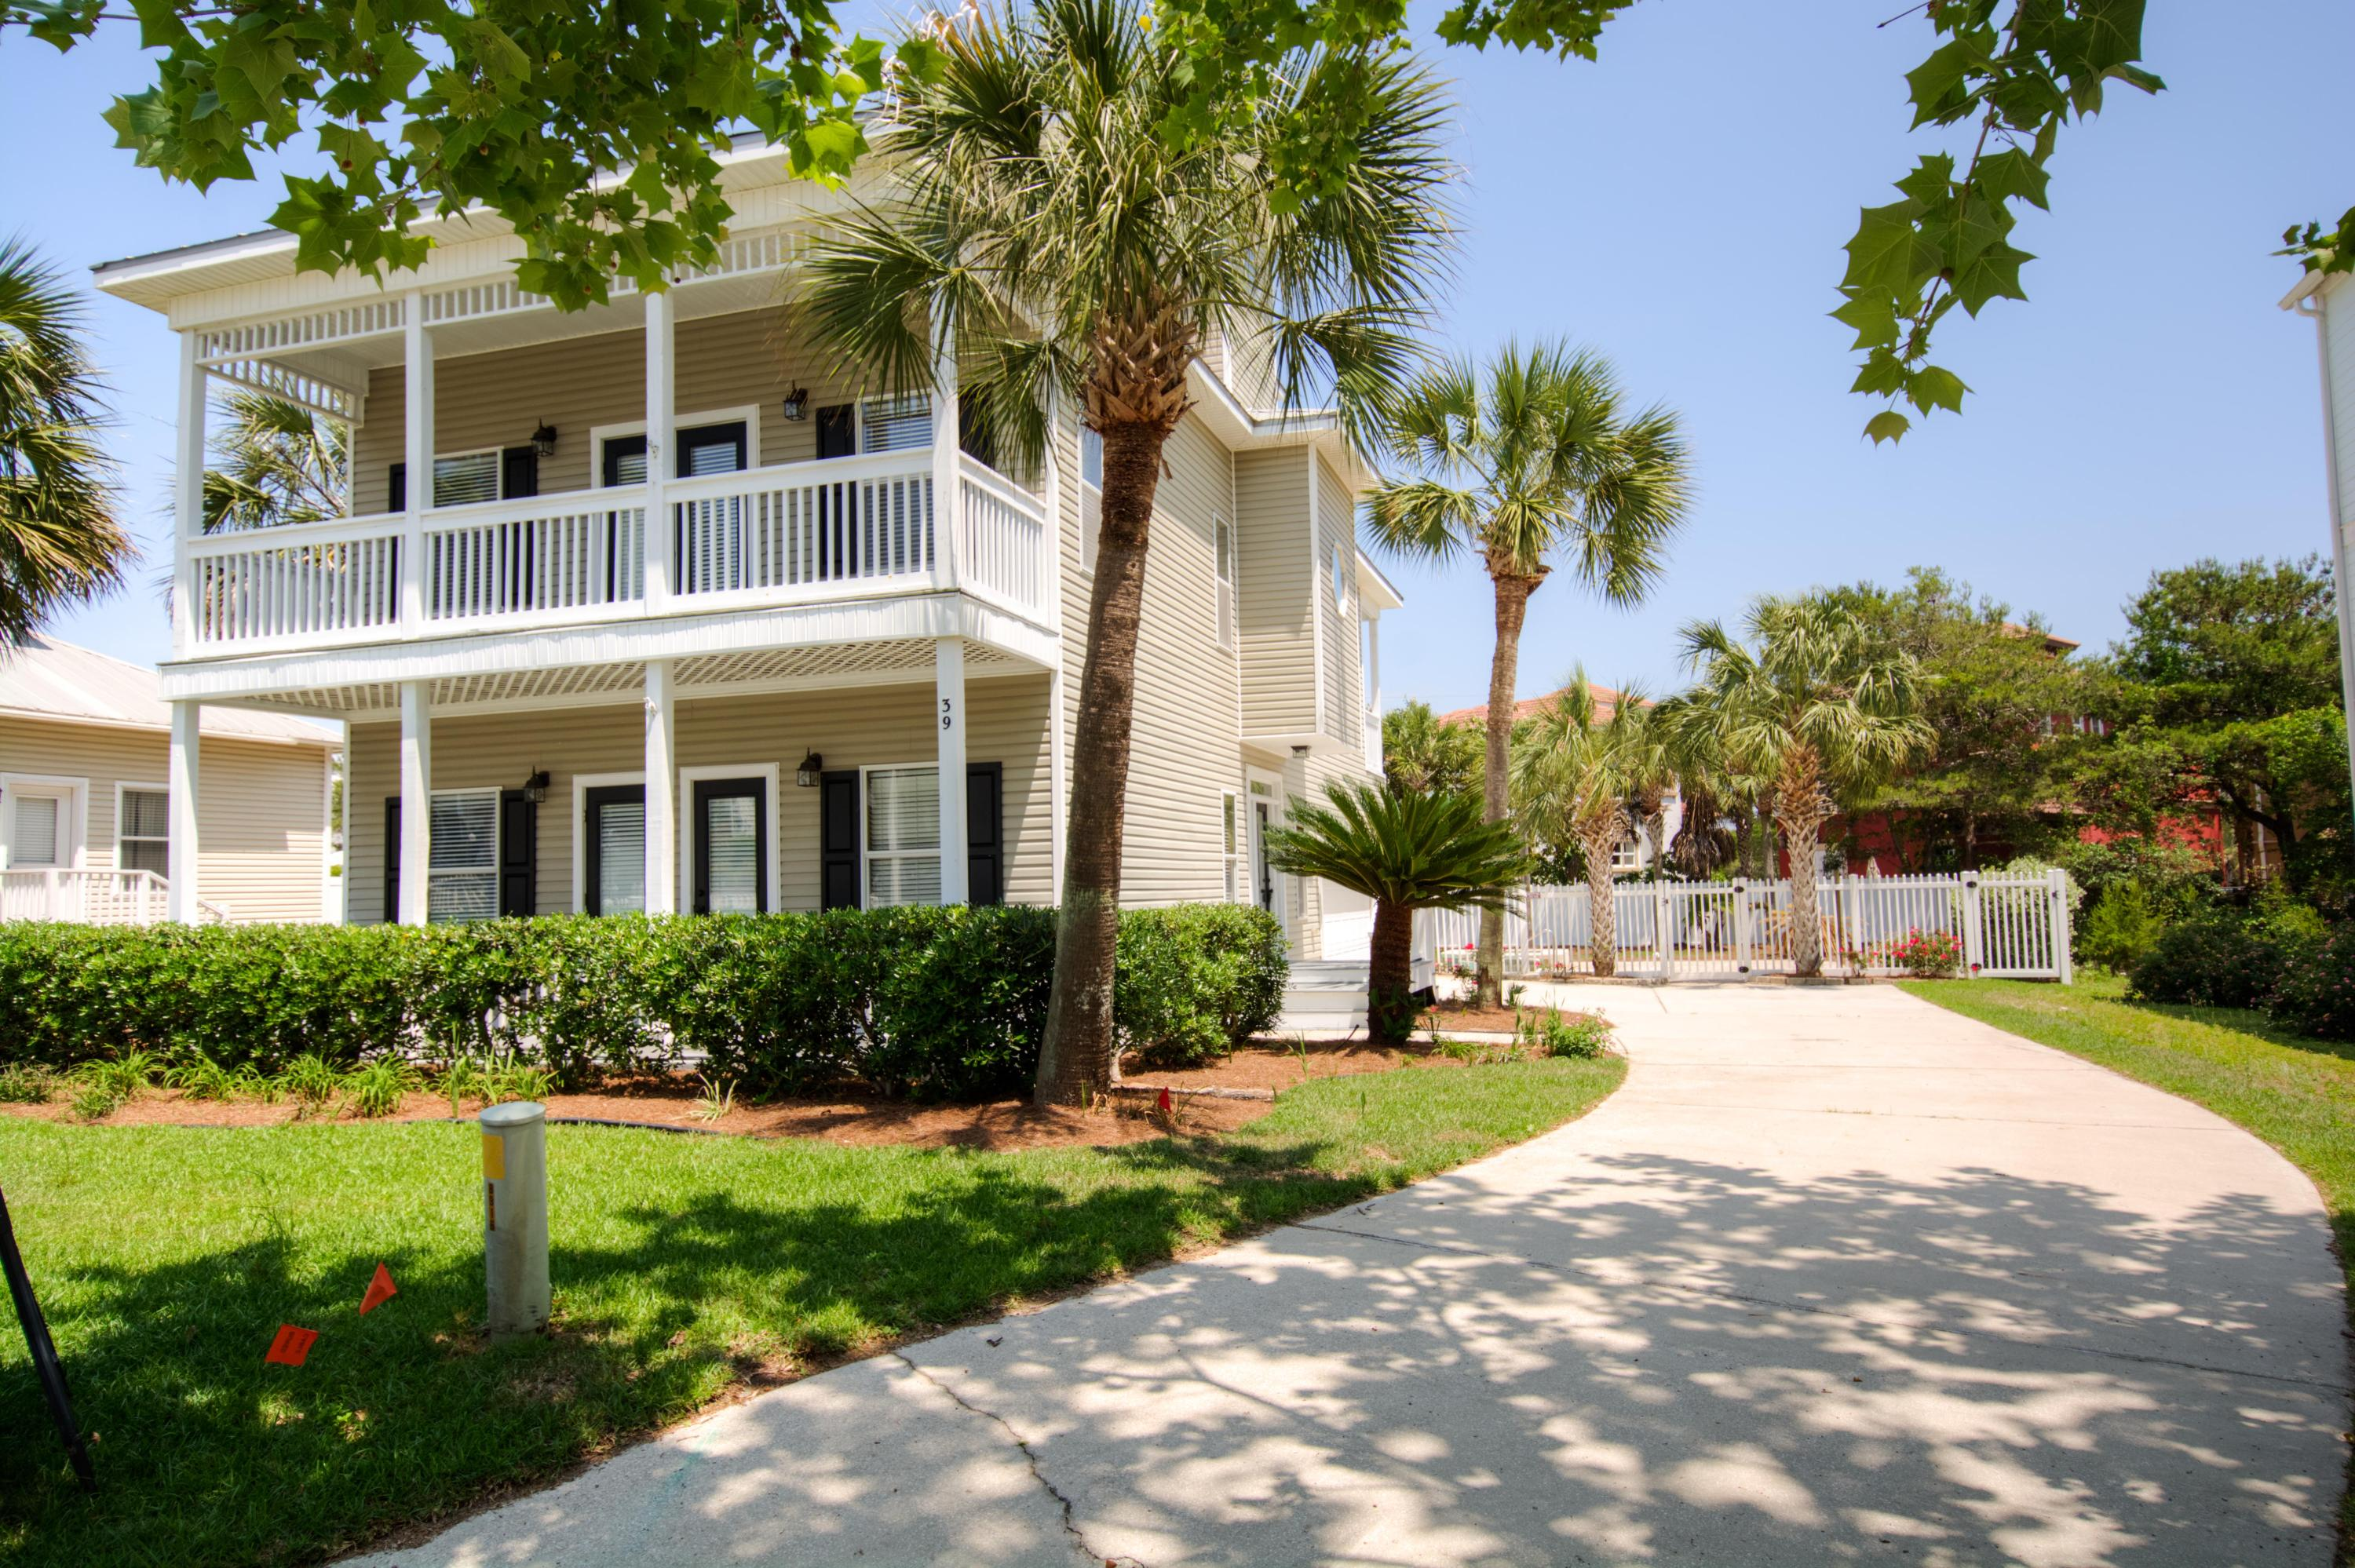 Photo of home for sale at 39 Sandcastle, Santa Rosa Beach FL